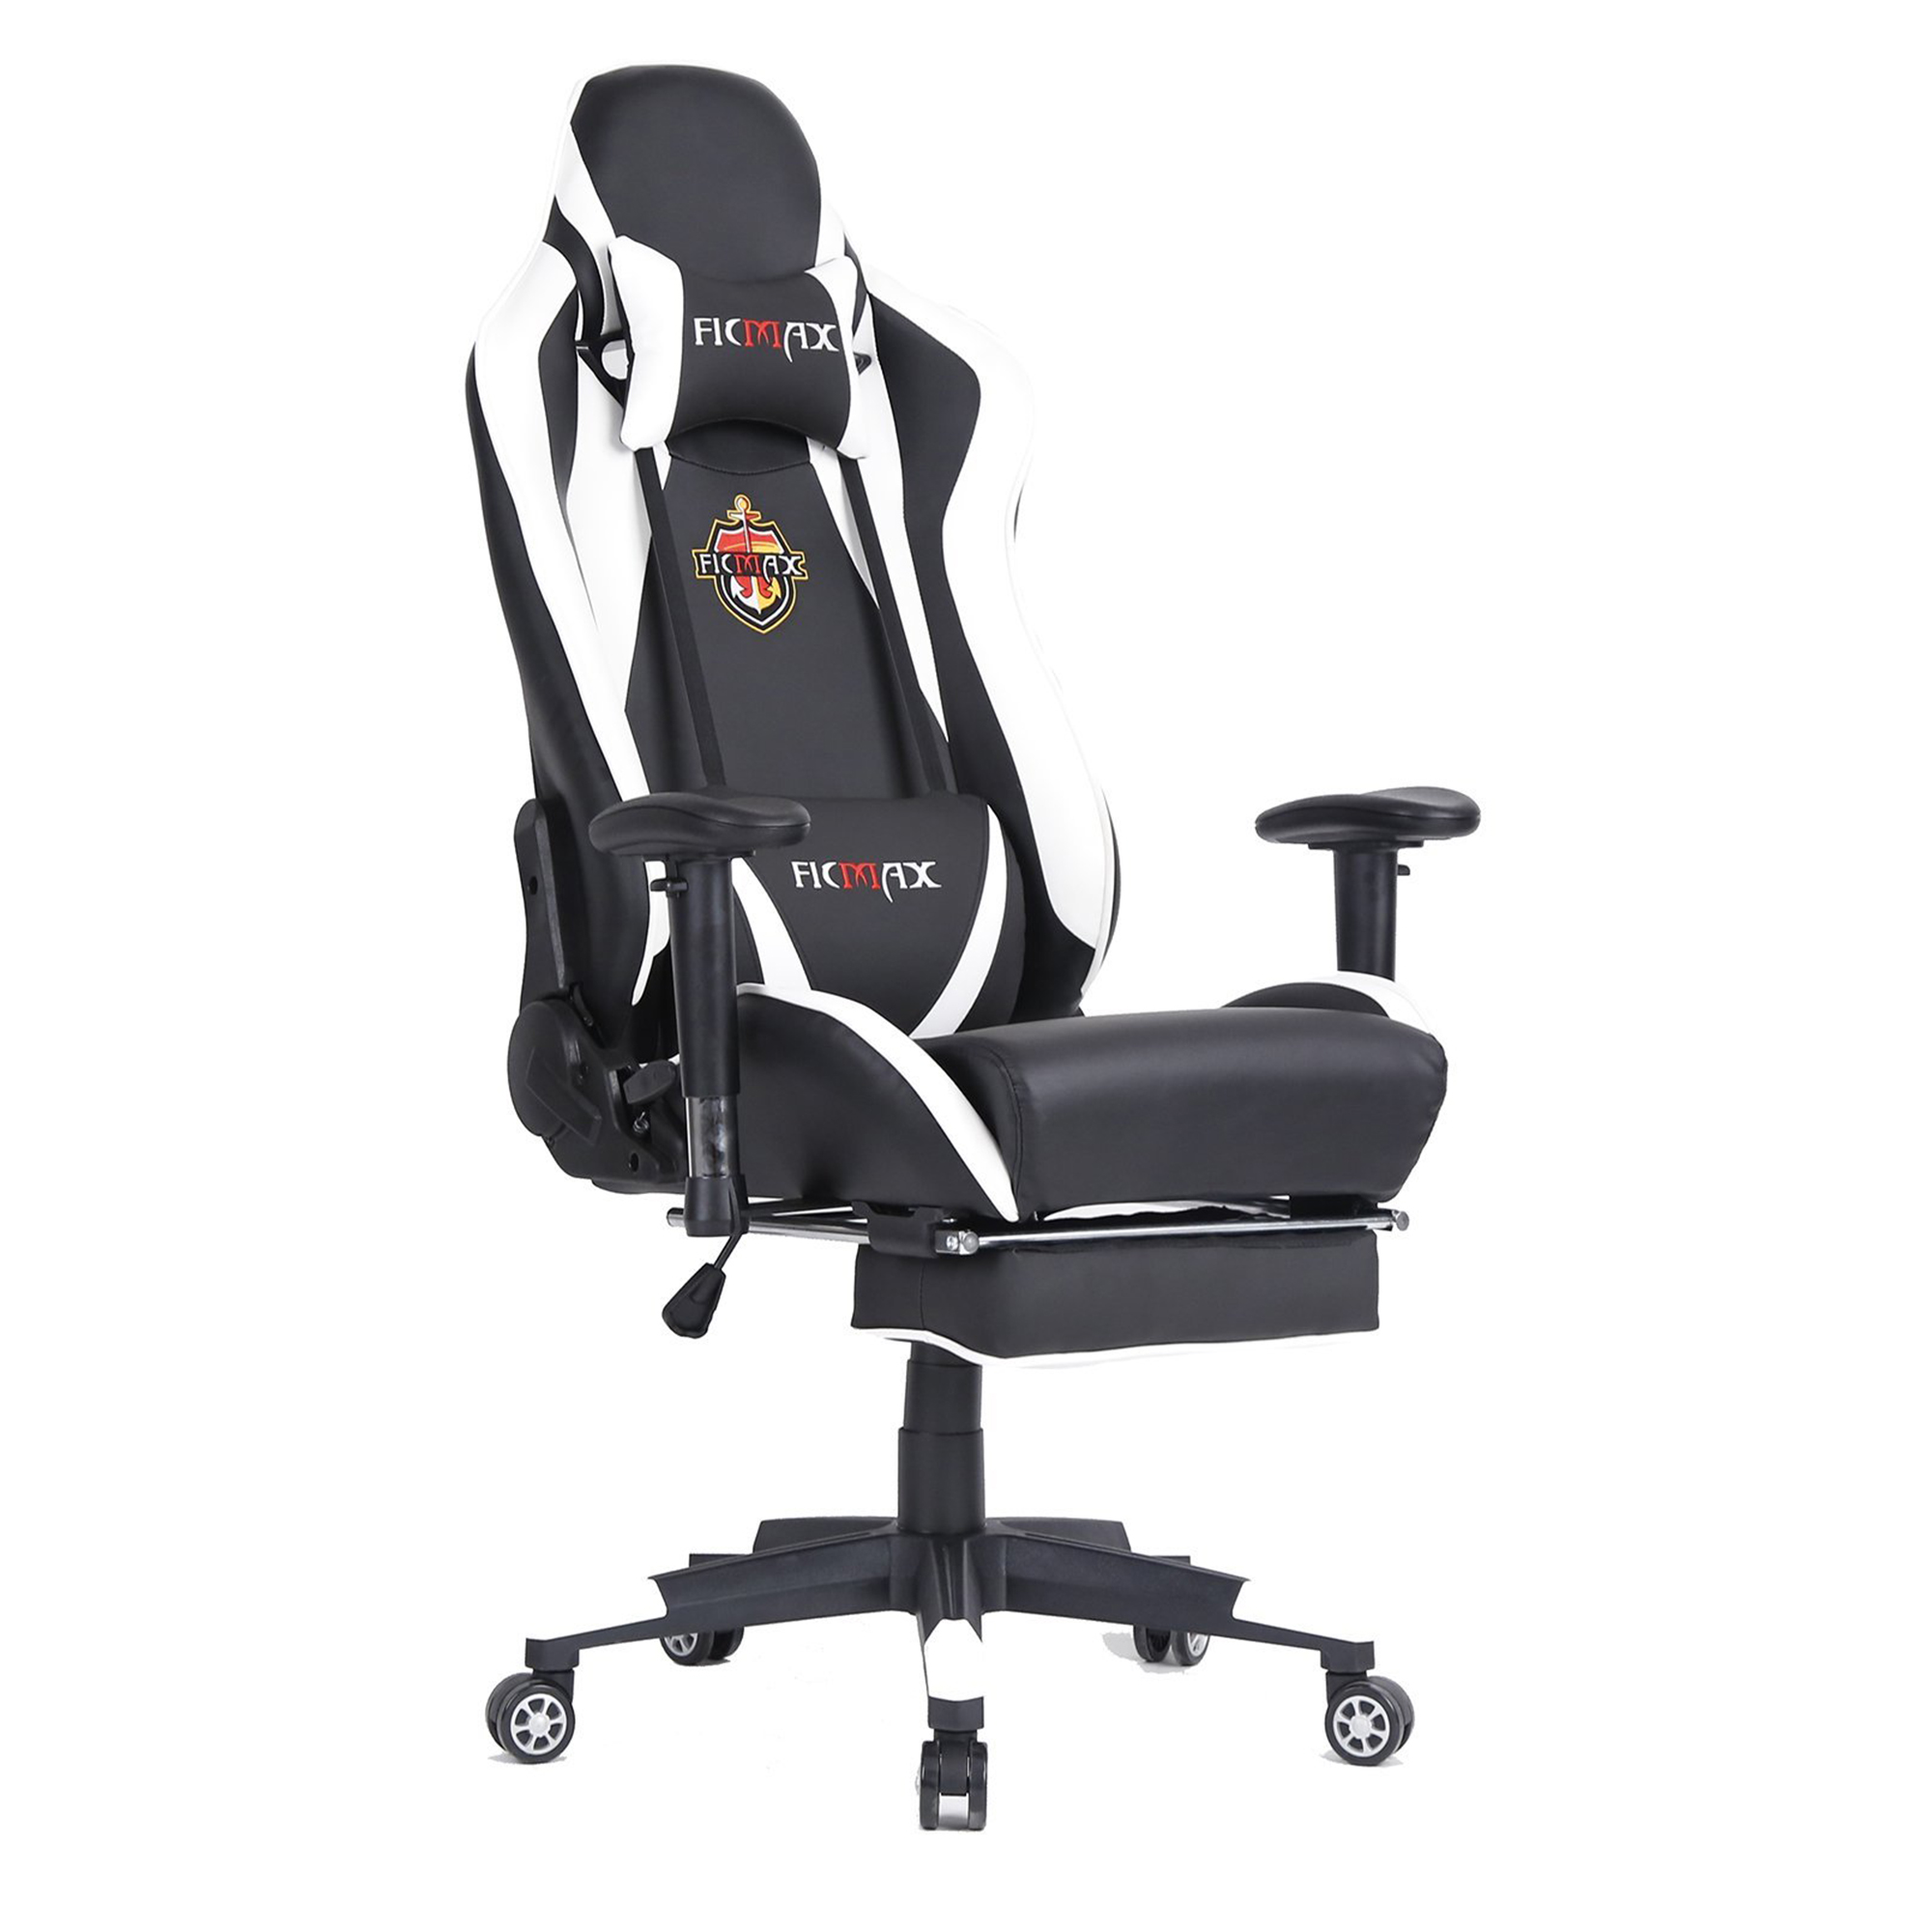 Computer Chair Ergonomically Correct Ficmax Ergonomic Executive Gaming Computer Chair High Back With Massage Lumbar Support